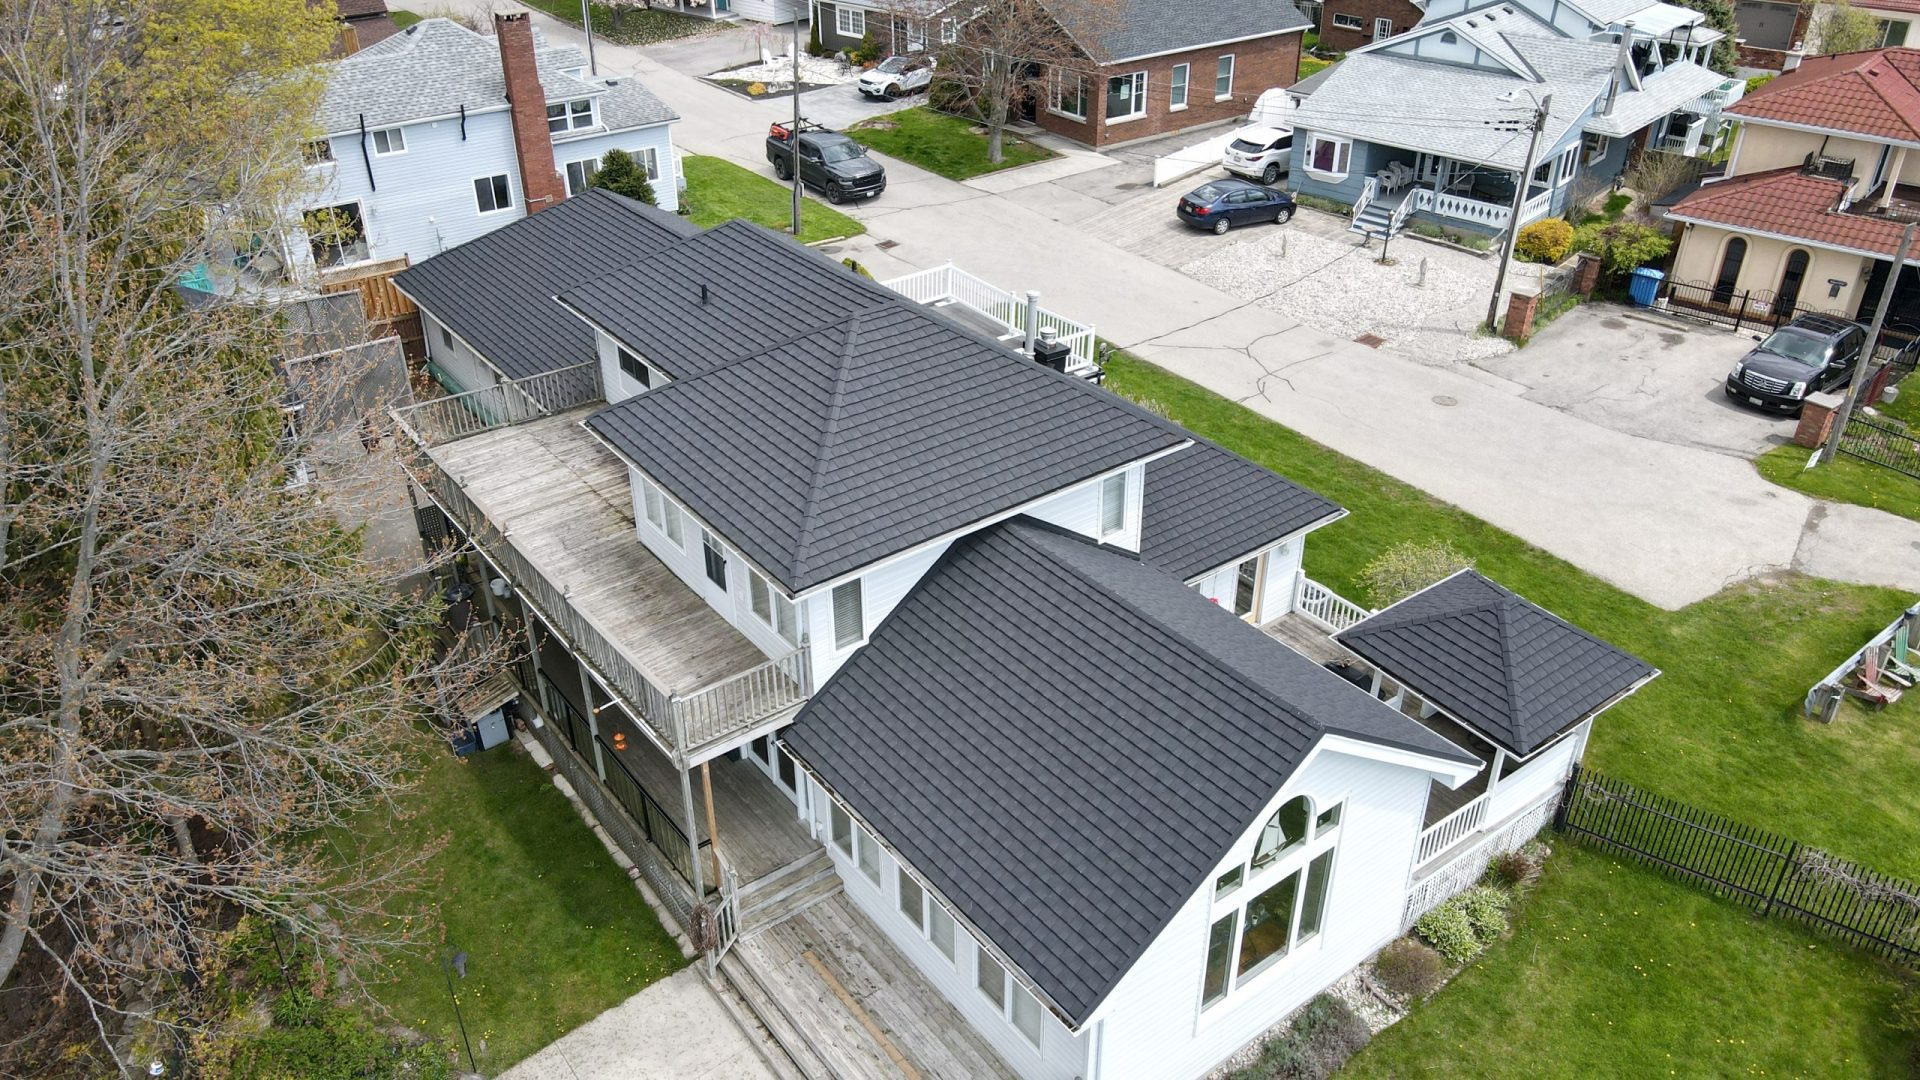 Aerial view of attached garage on a white cottage with a green lawn, trees and a blue cloudy sky in the background. Cottage located in Port Stanley, Ontario with Tilcor CF Shingle metal roof by metalroofoutlet.com